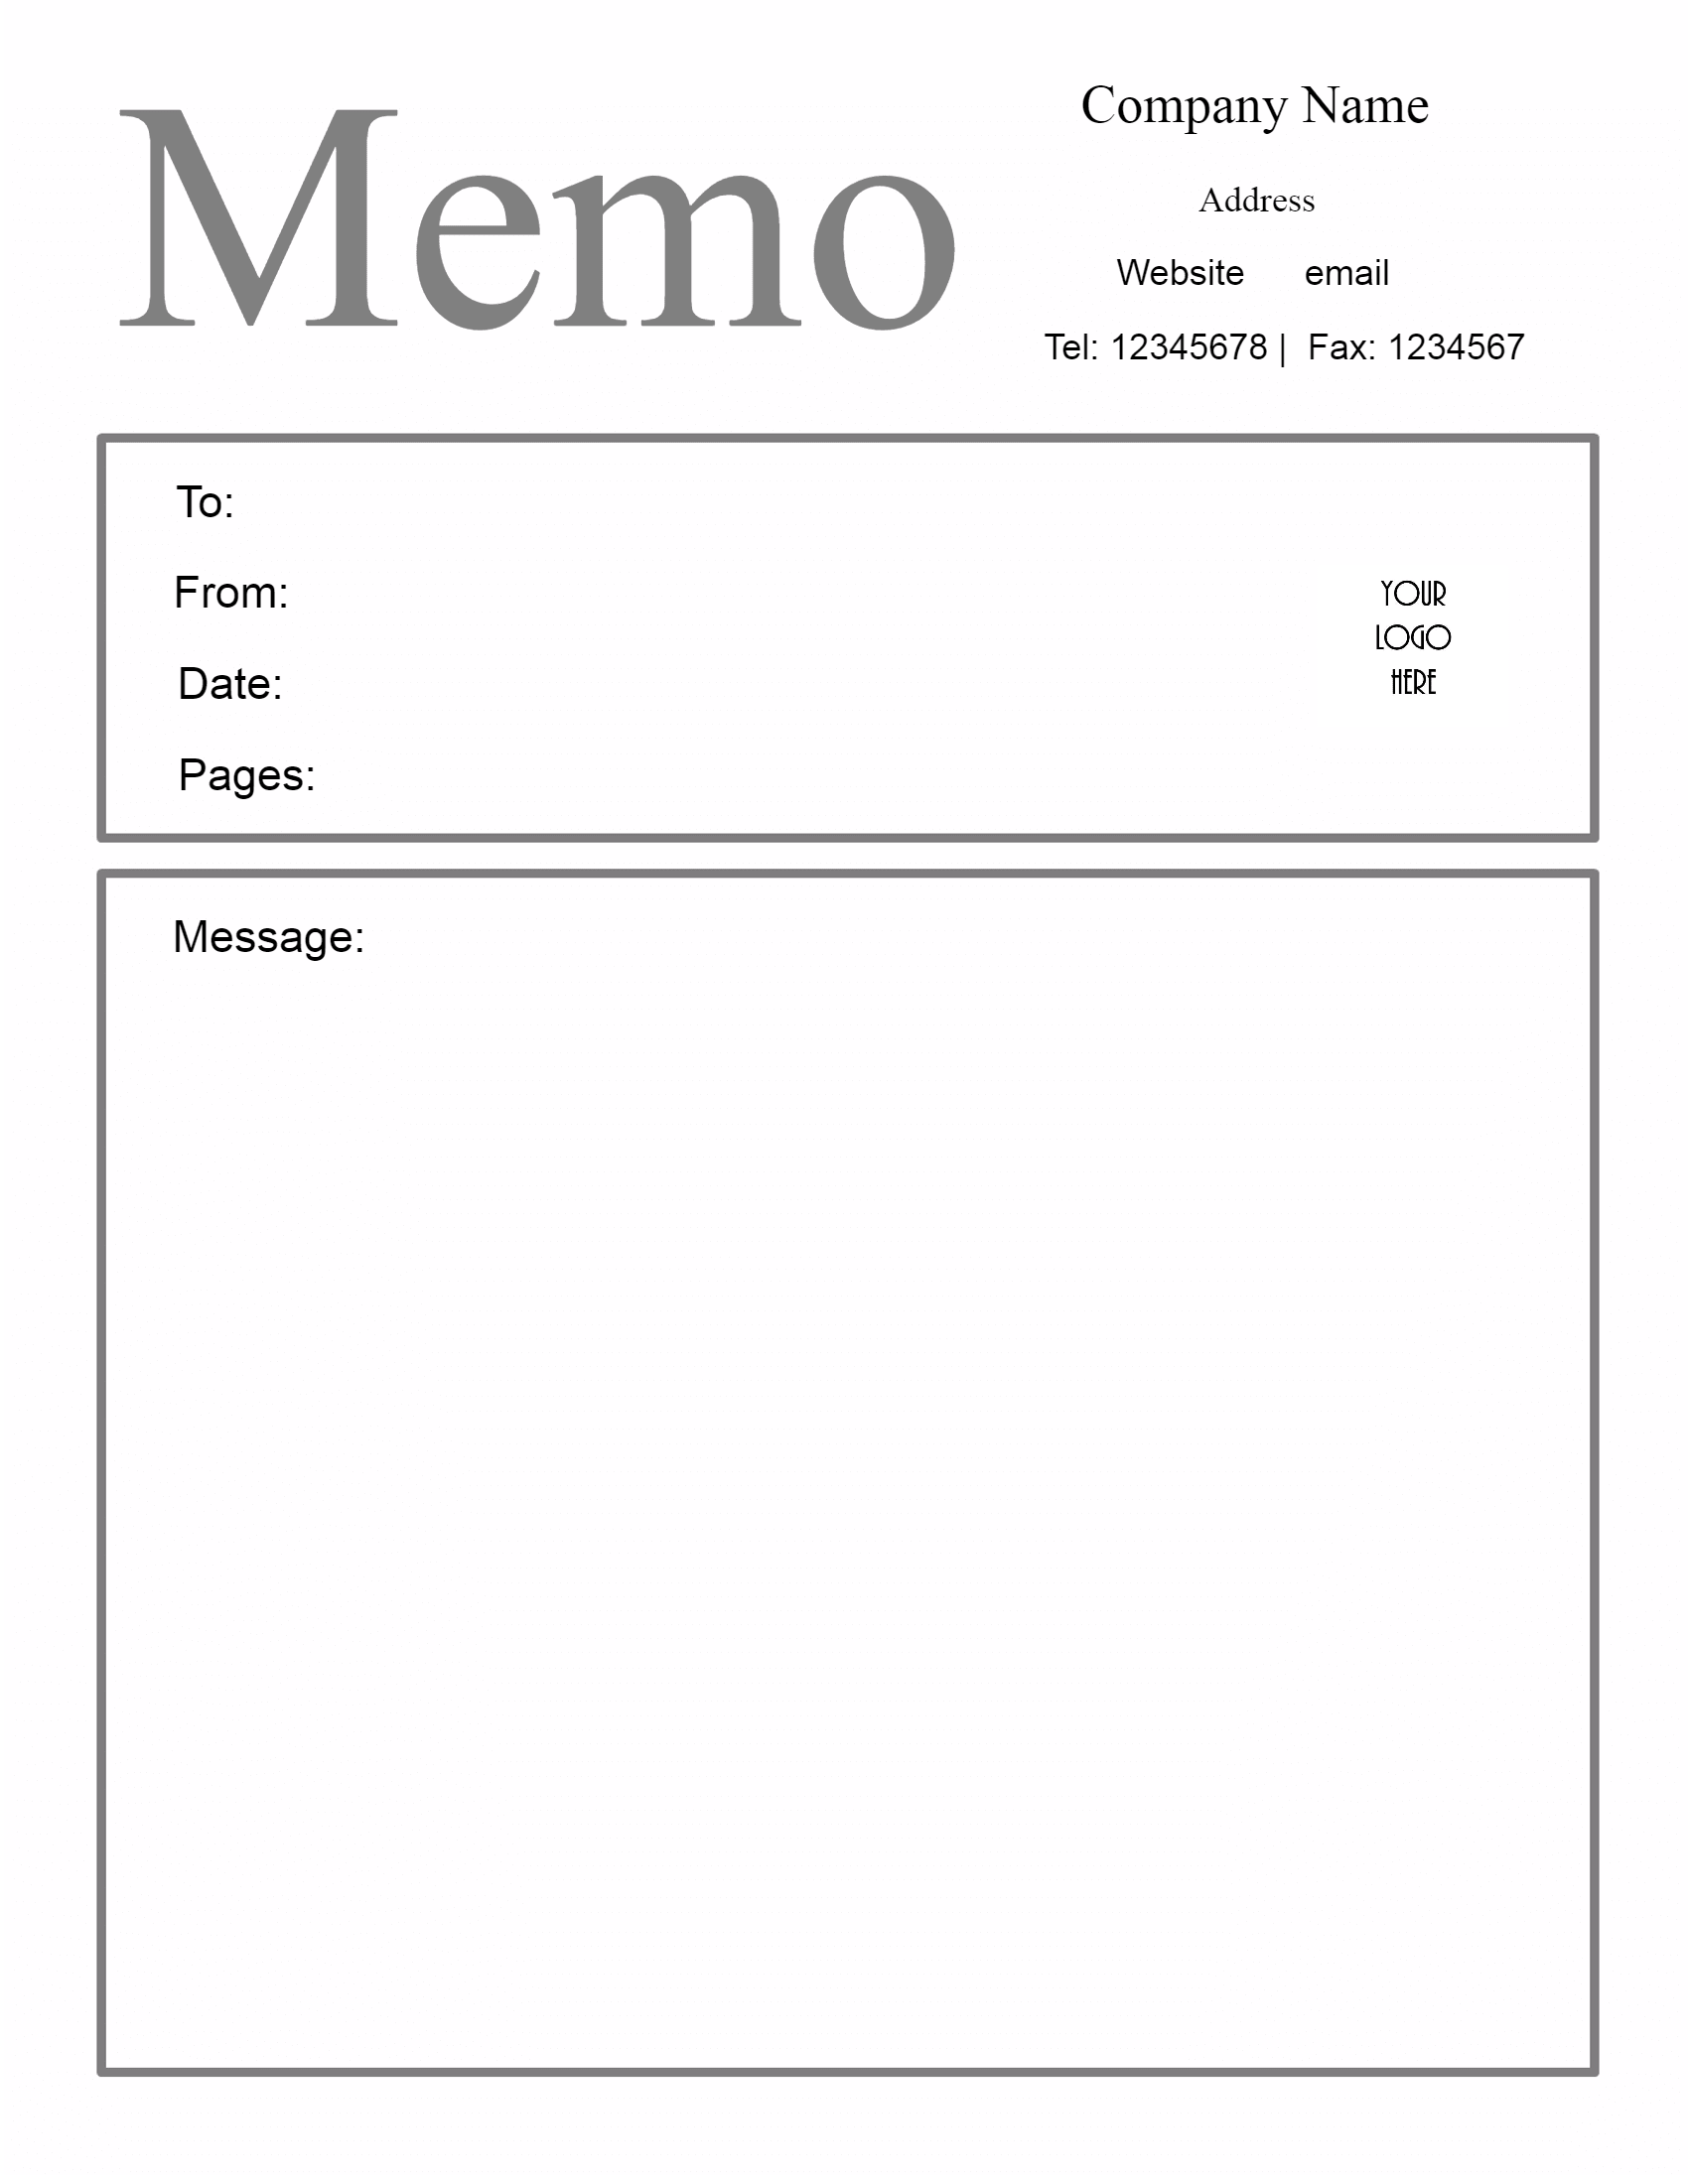 Marvelous Memo Template Pertaining To Memo Templete